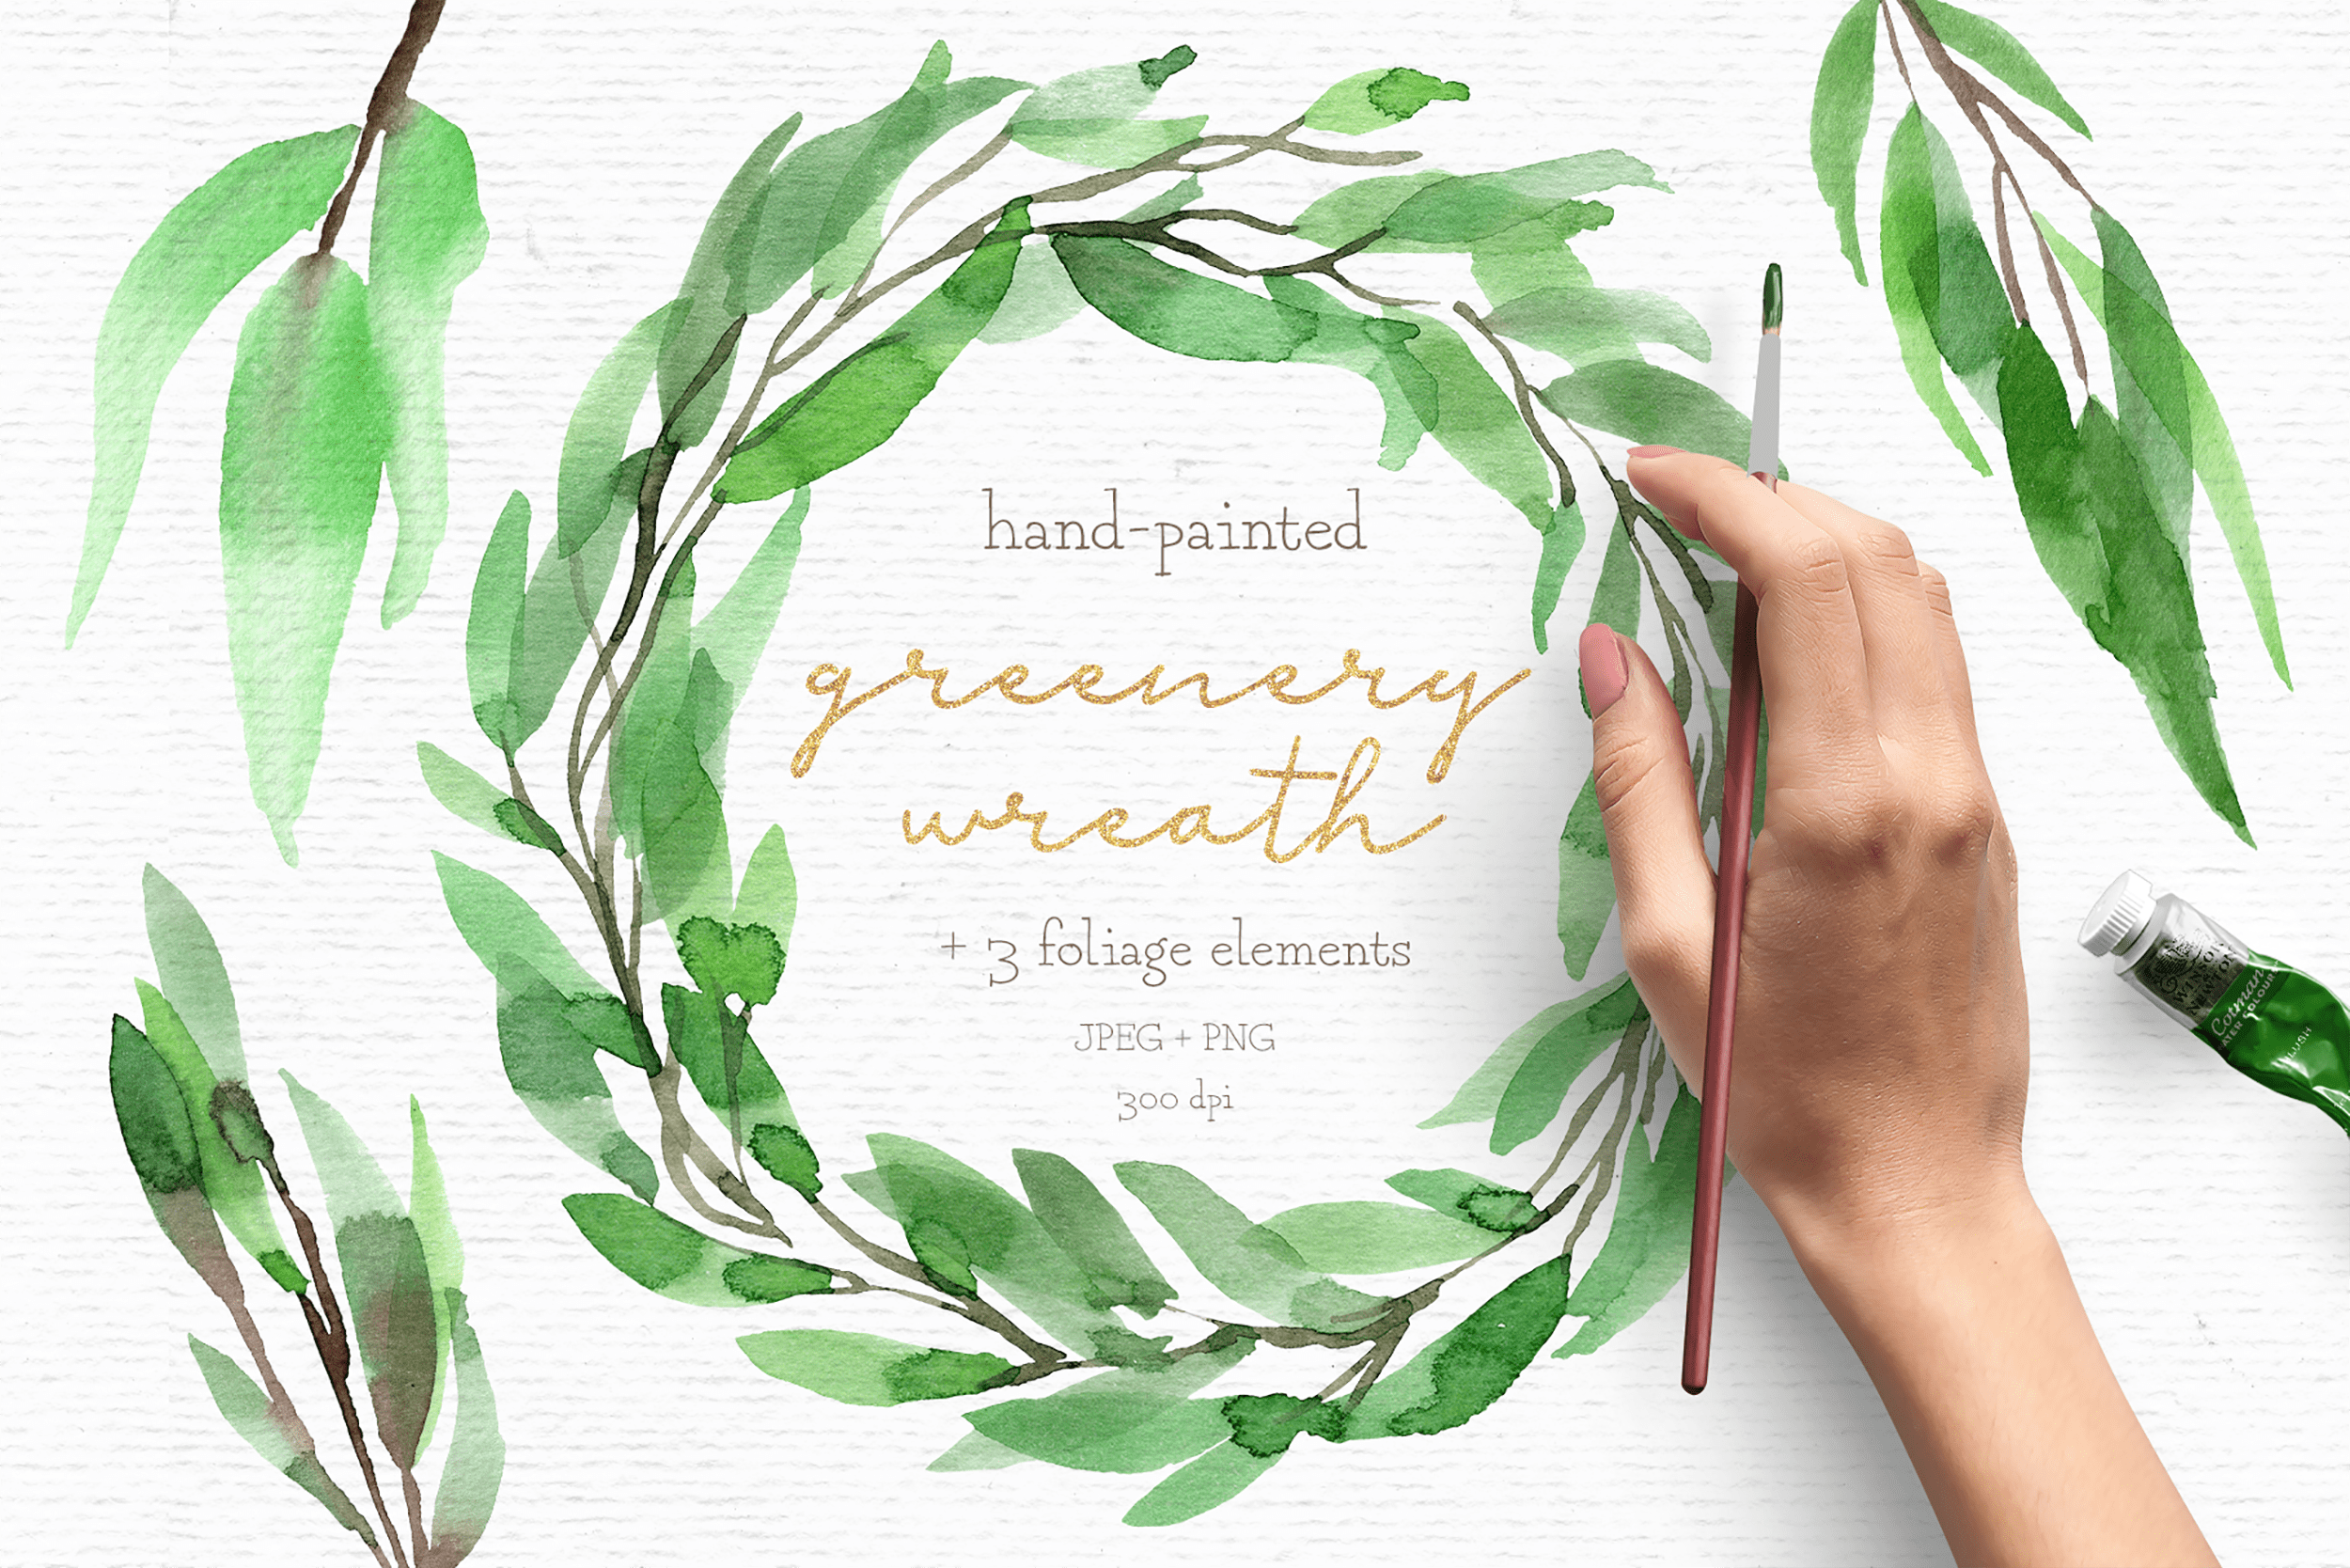 Christian clipart winter greenery jpg library library Greenery watercolor wreath clipart jpg library library